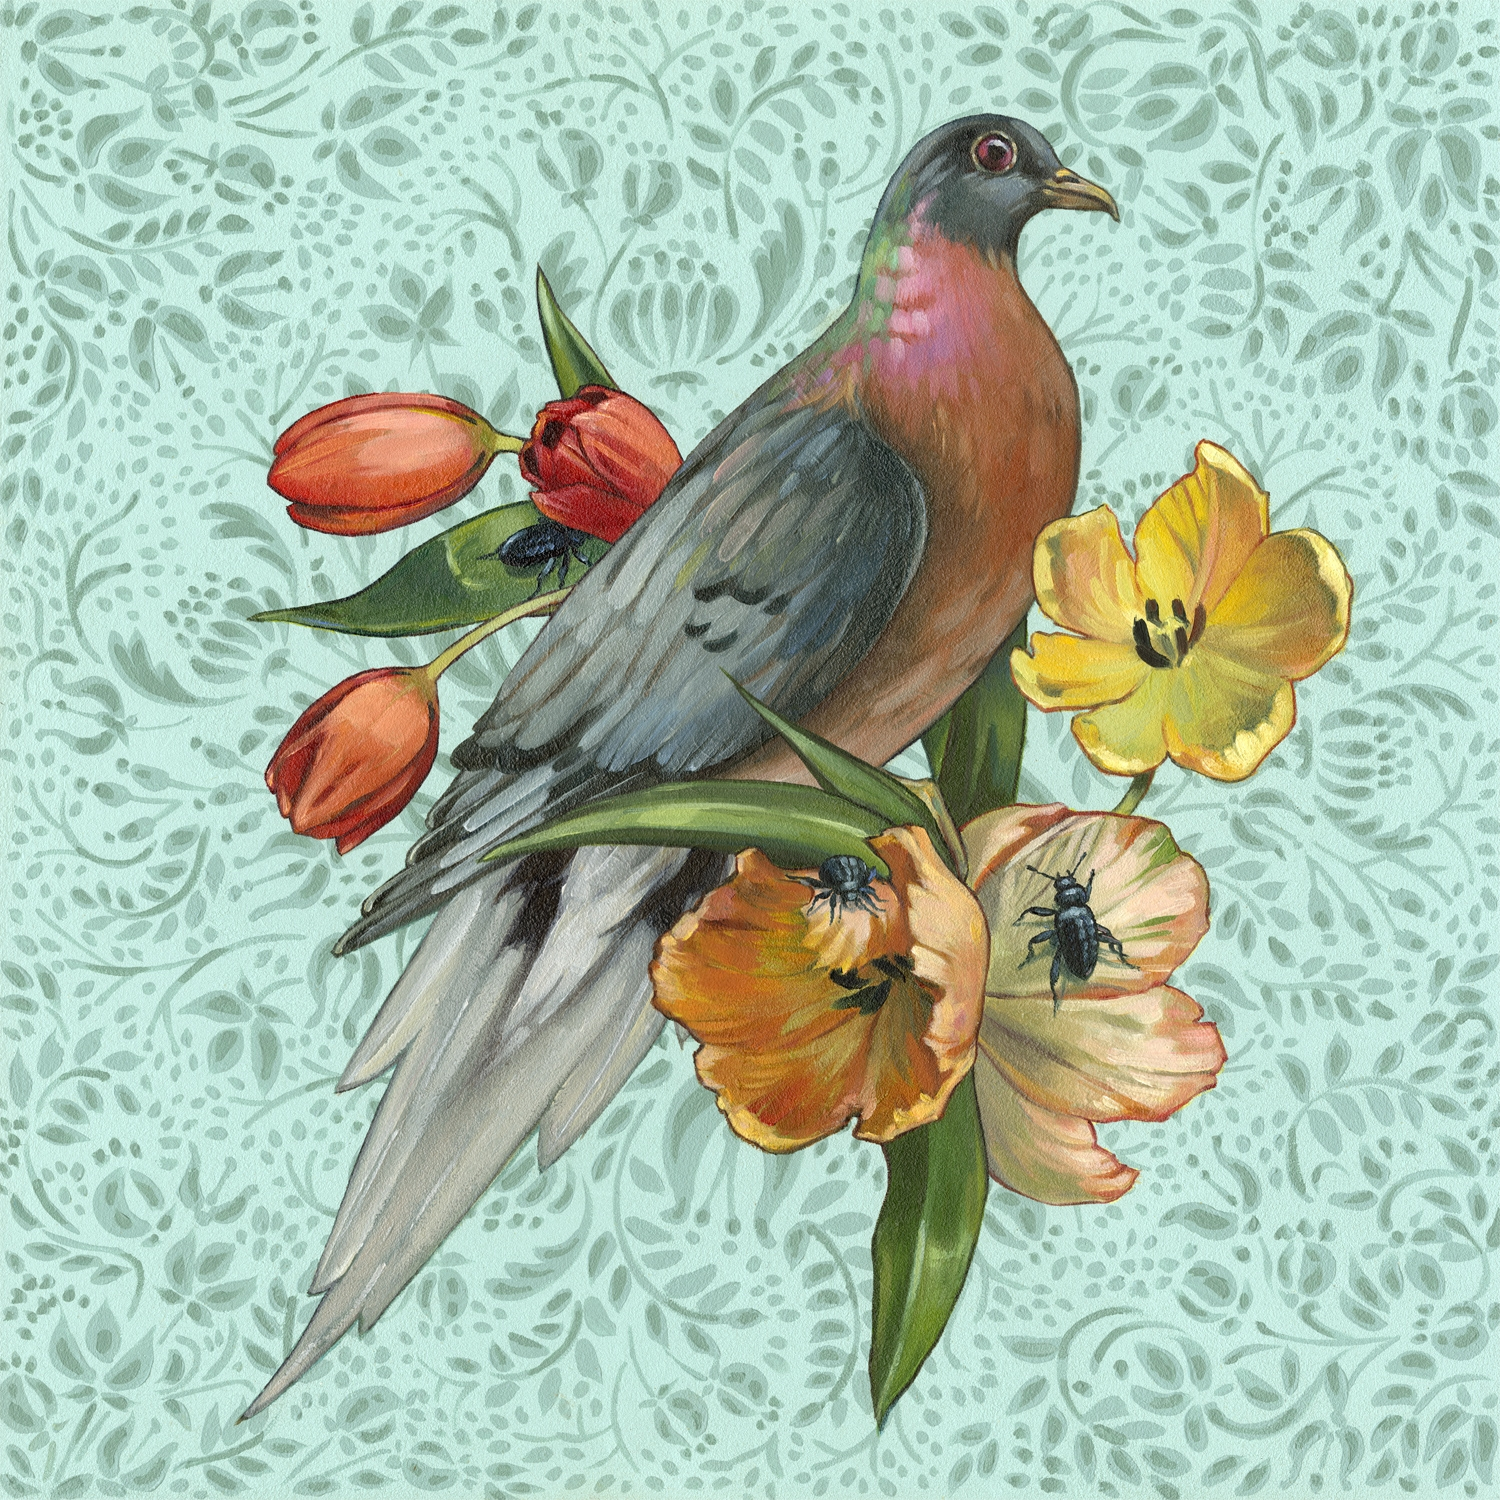 Ashley Cecil, Passenger Pigeon on Mint